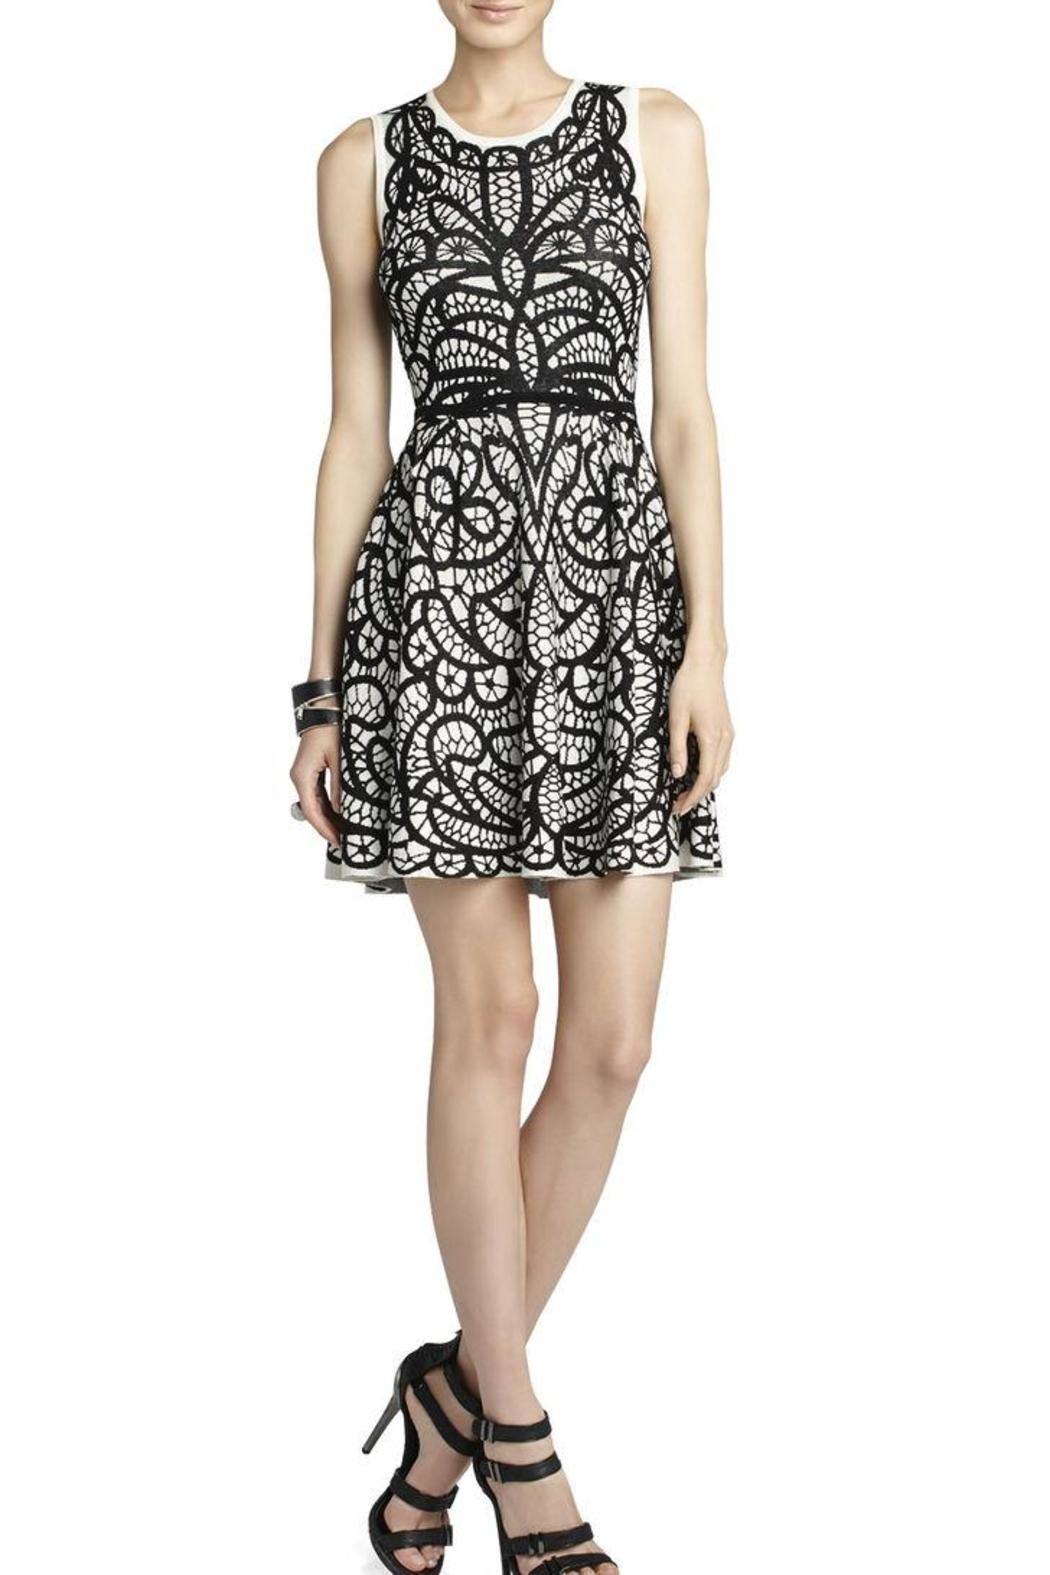 BCBG Max Azria Talulah Dress - Front Cropped Image